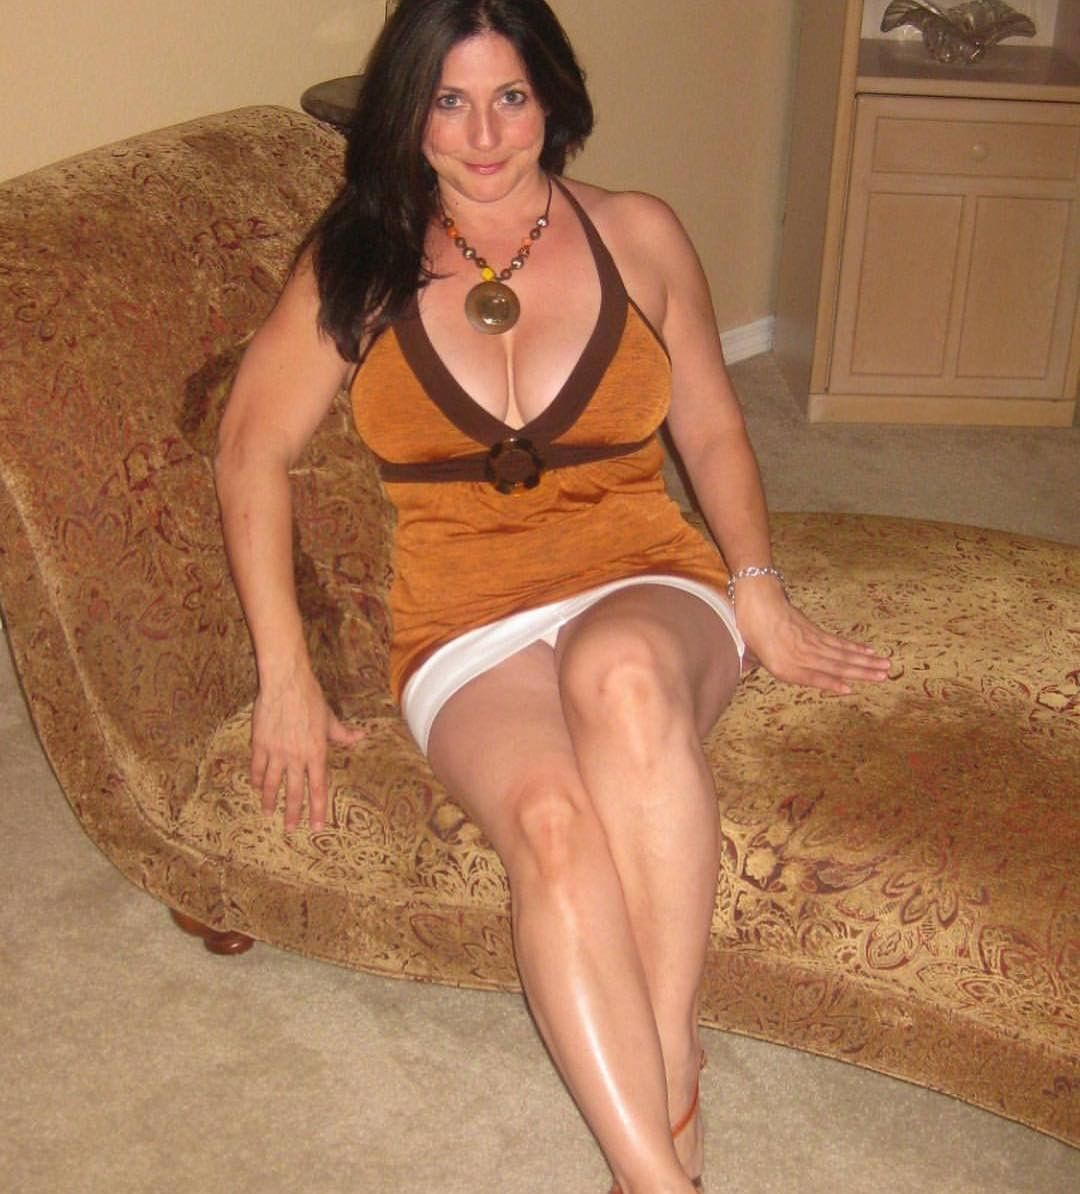 bakerstown milf personals Hot local milfs are online now and ready to text selfies, meet and hookup tonight start milf dating now, signup free in less than 2 minutes.